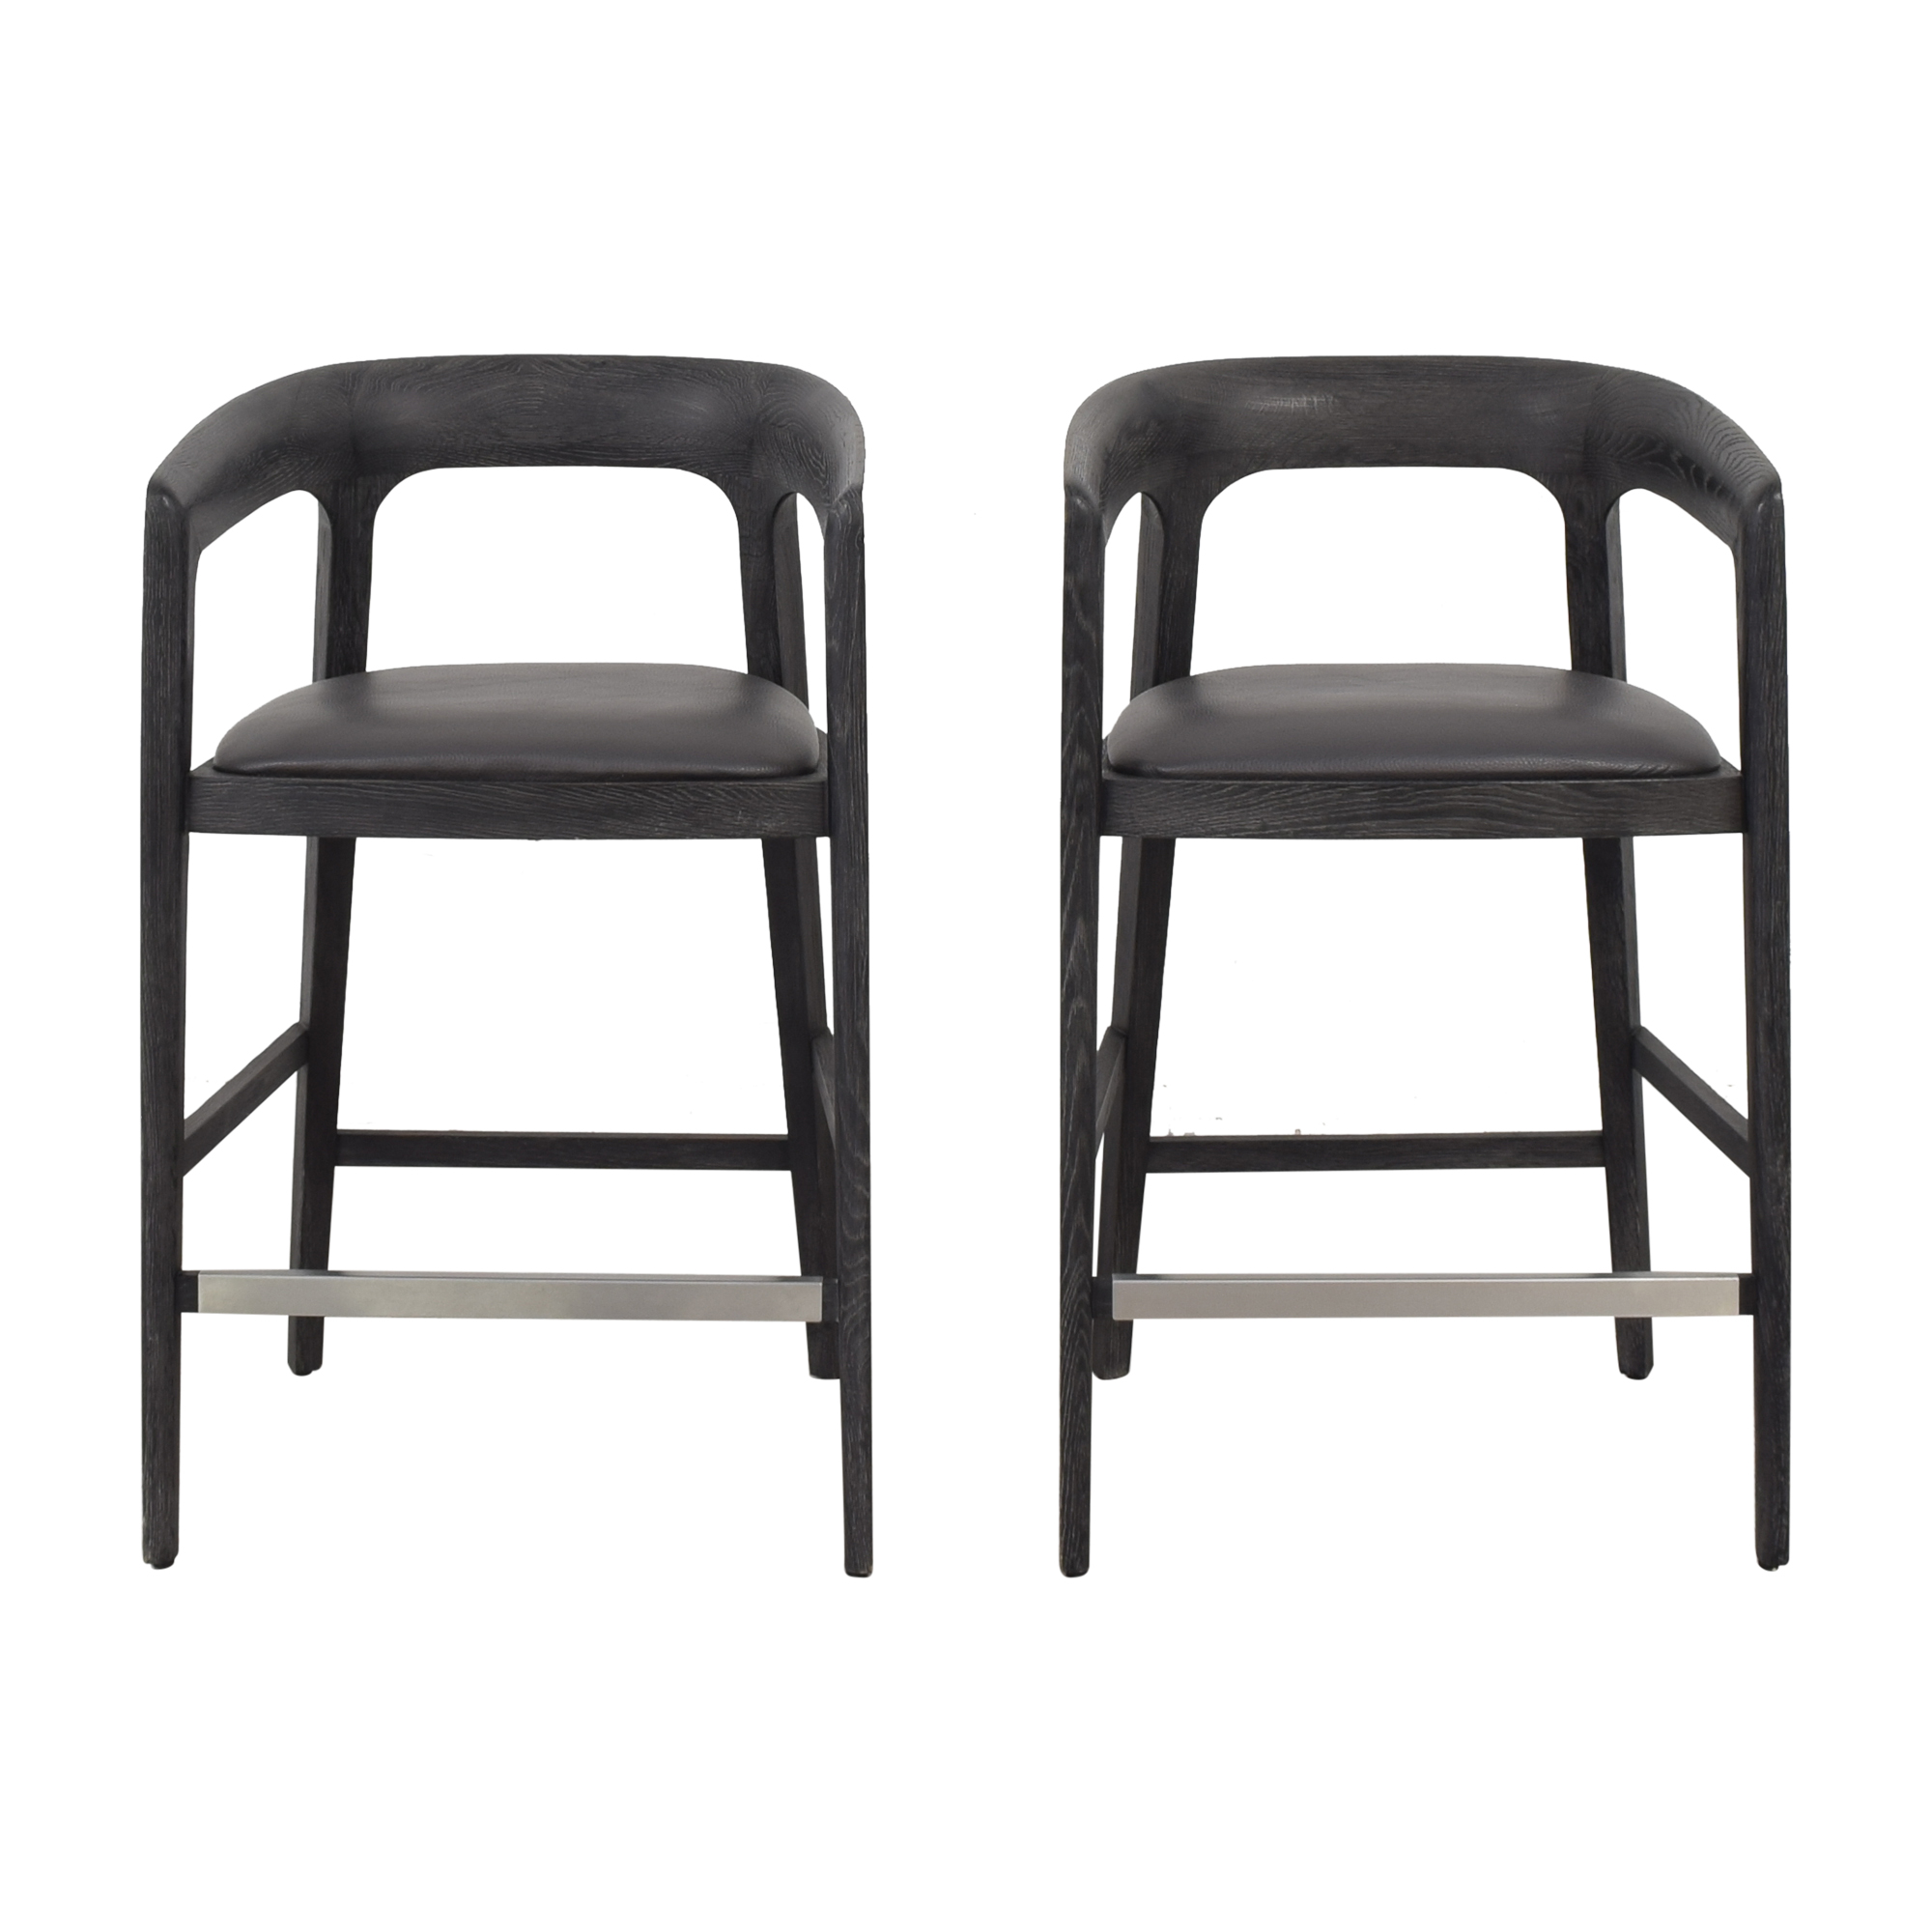 Interlude Home Interlude Home Kendra Counter Stools dark grey